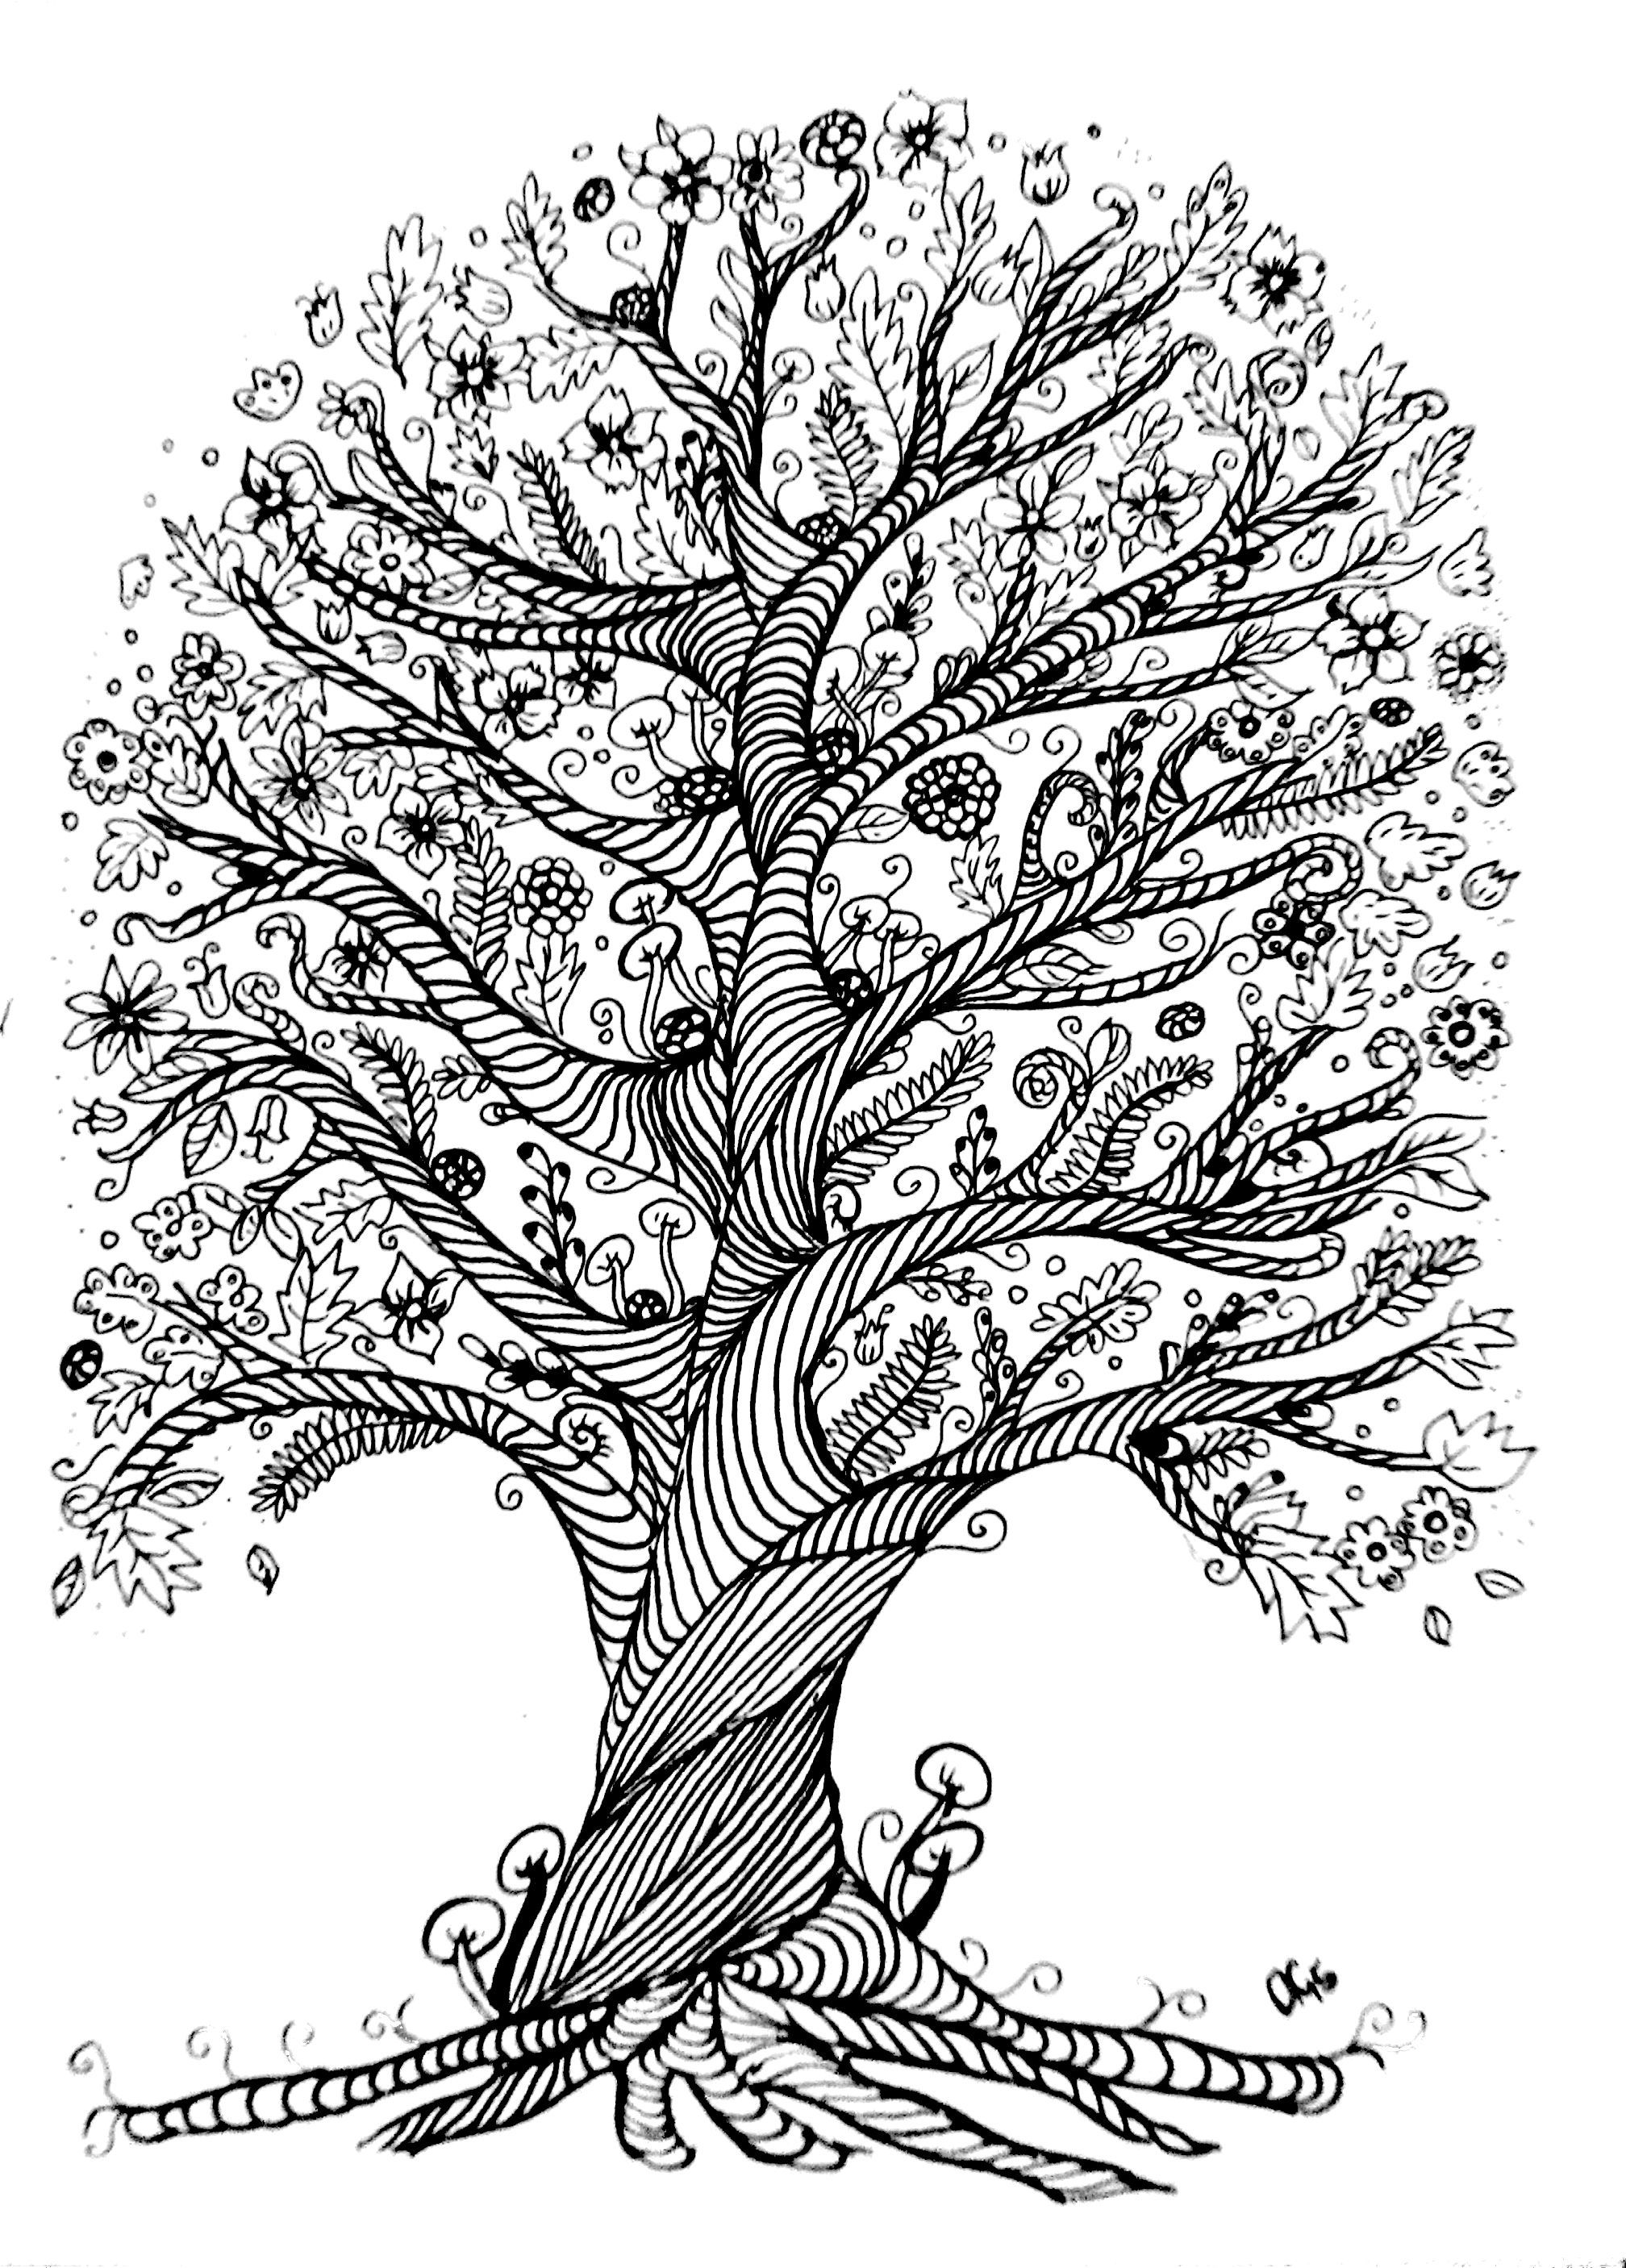 tree of life coloring tree of life coloring pages at getdrawings free download life of coloring tree